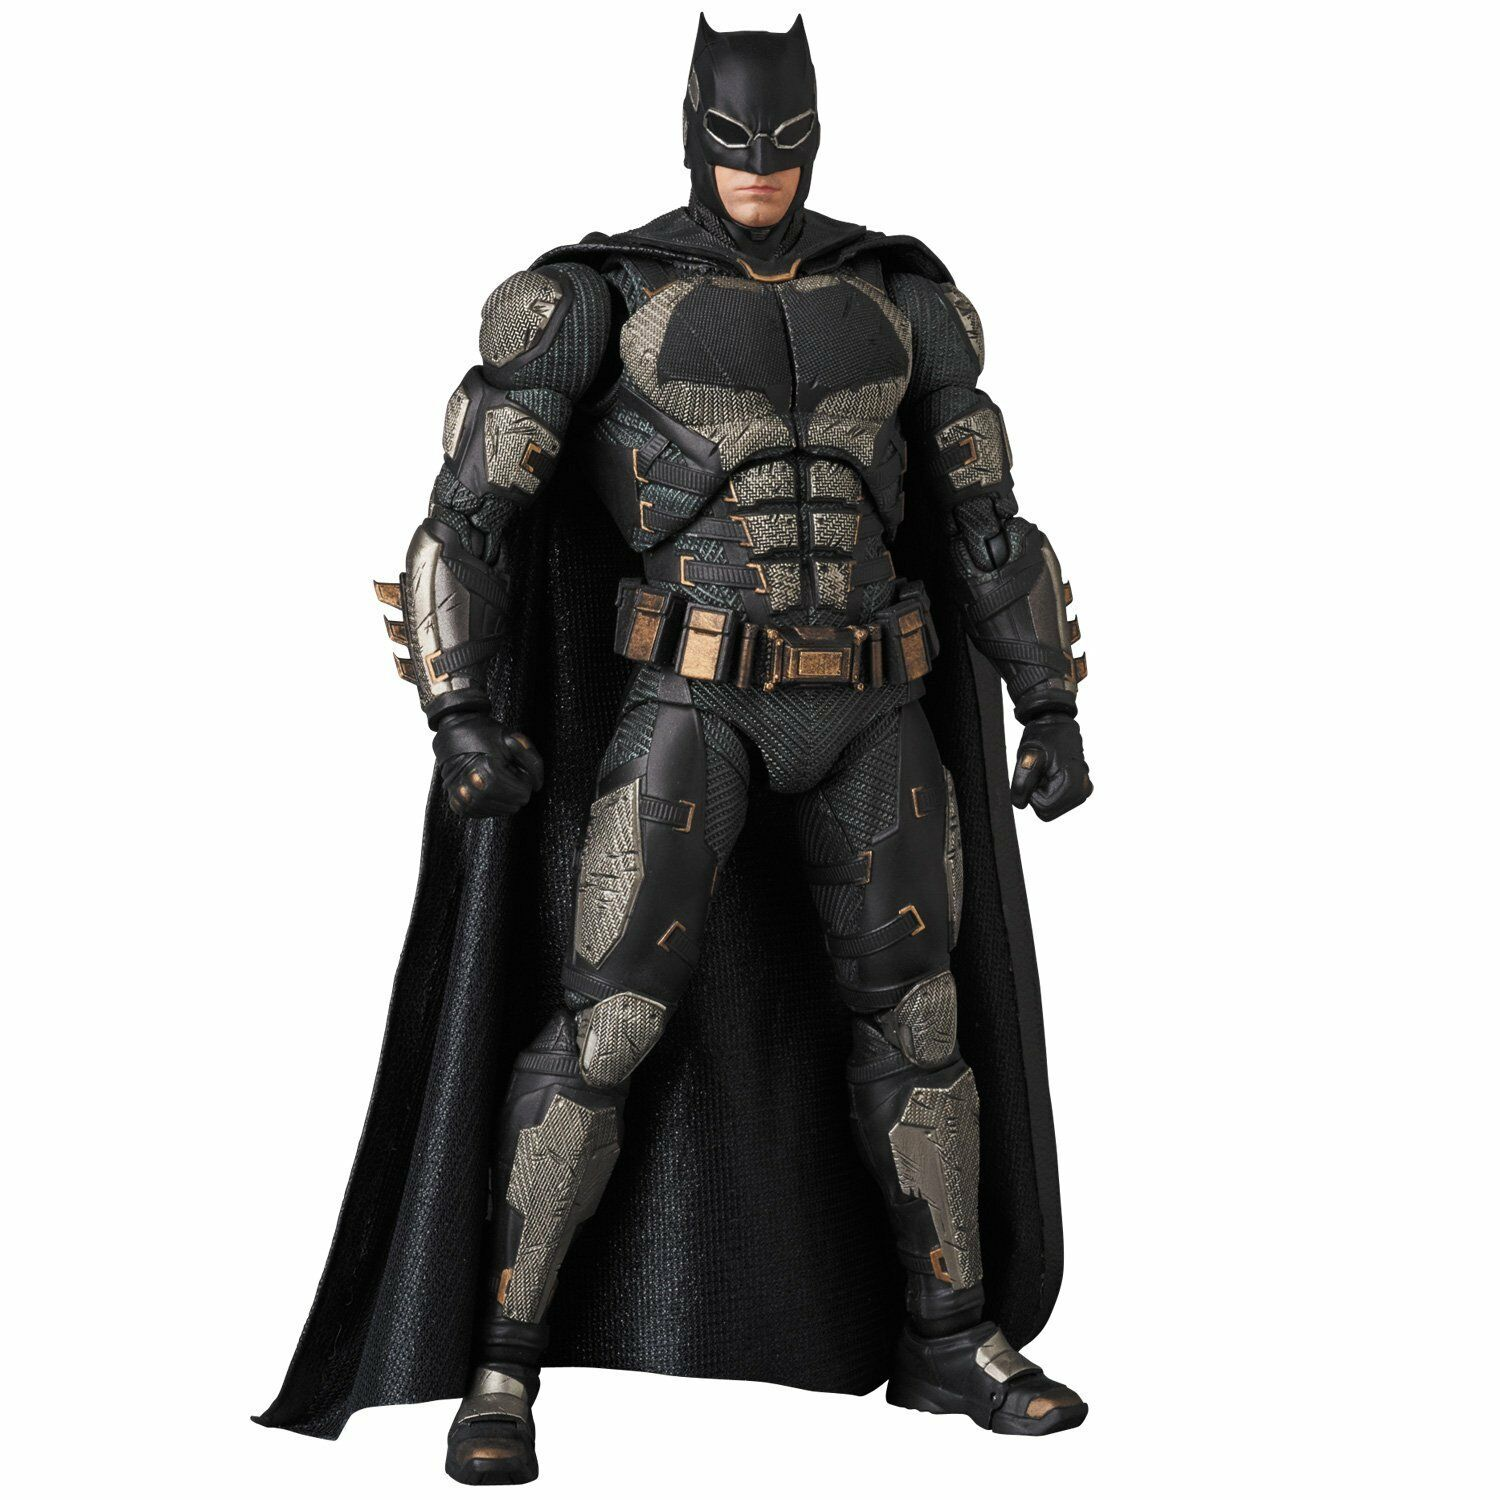 Medicom Jouet MAFEX Justice League Batman Tactique Costume verison